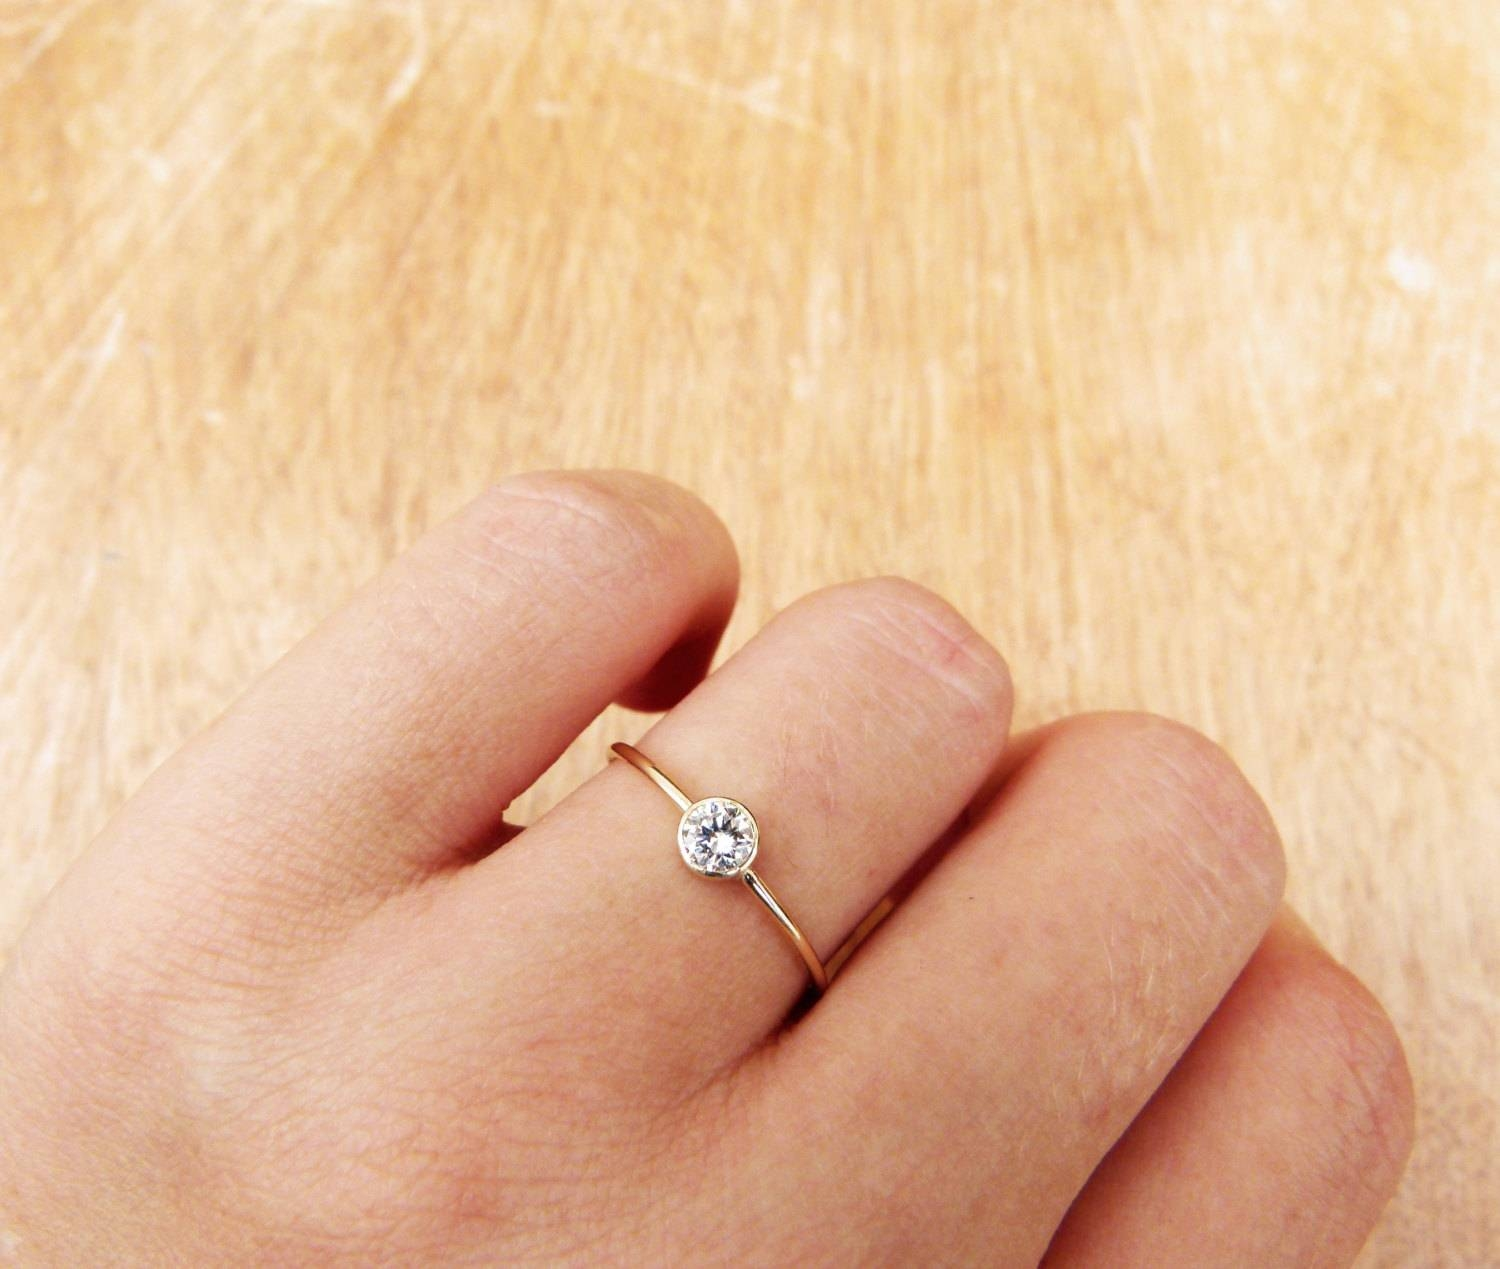 Wedding Rings : Affordable Engagement Rings Under $300 Used In Small Size Engagement Rings (View 7 of 15)